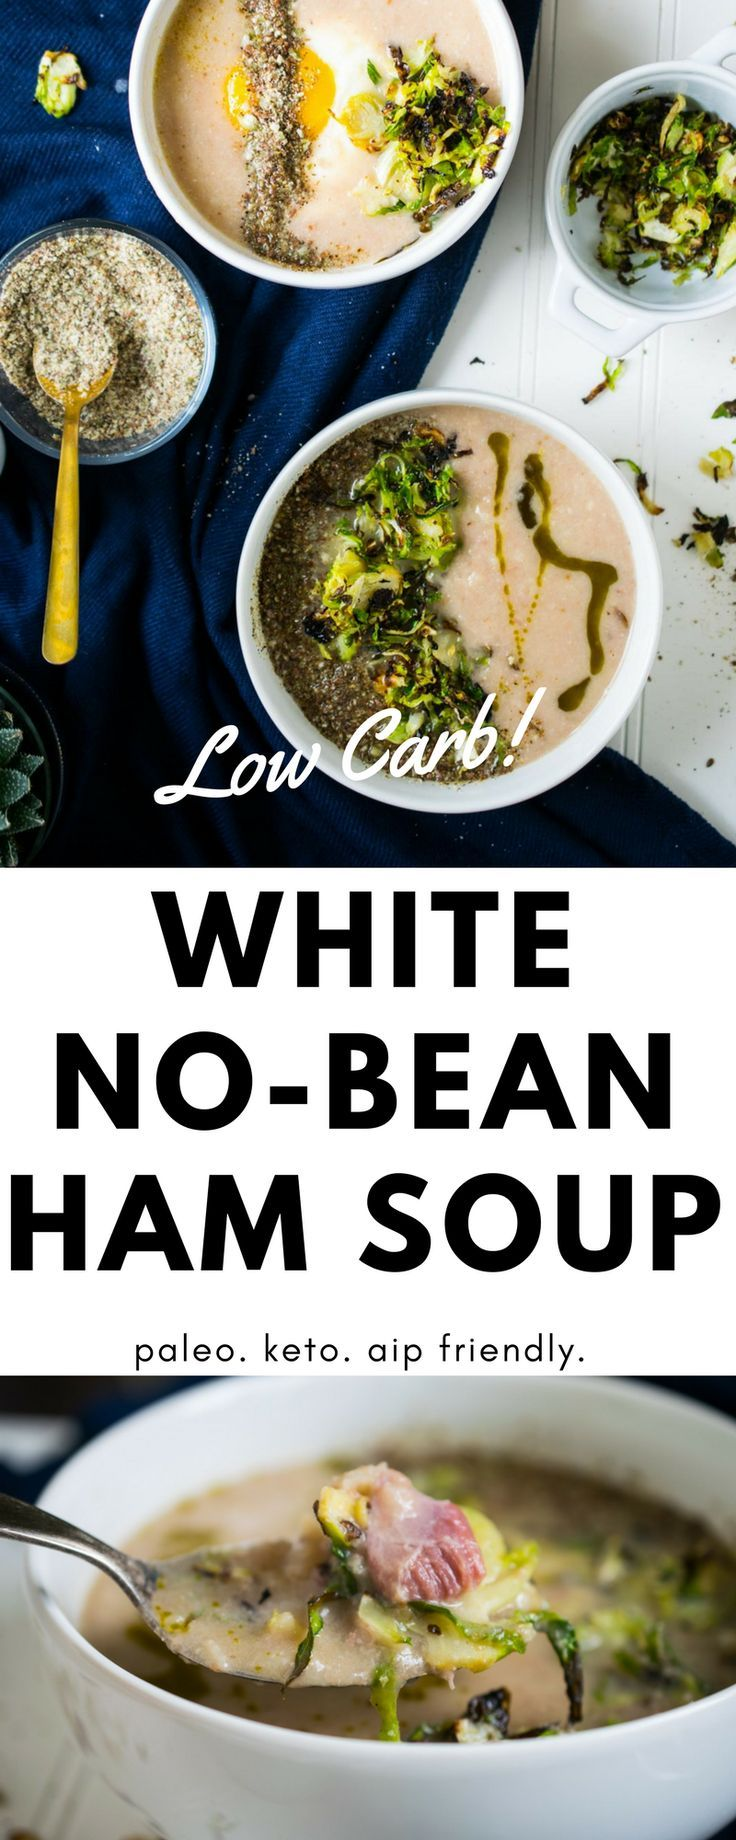 White No-Bean + Ham Soup (Paleo, Keto, AIP friendly) • The Castaway Kitchen